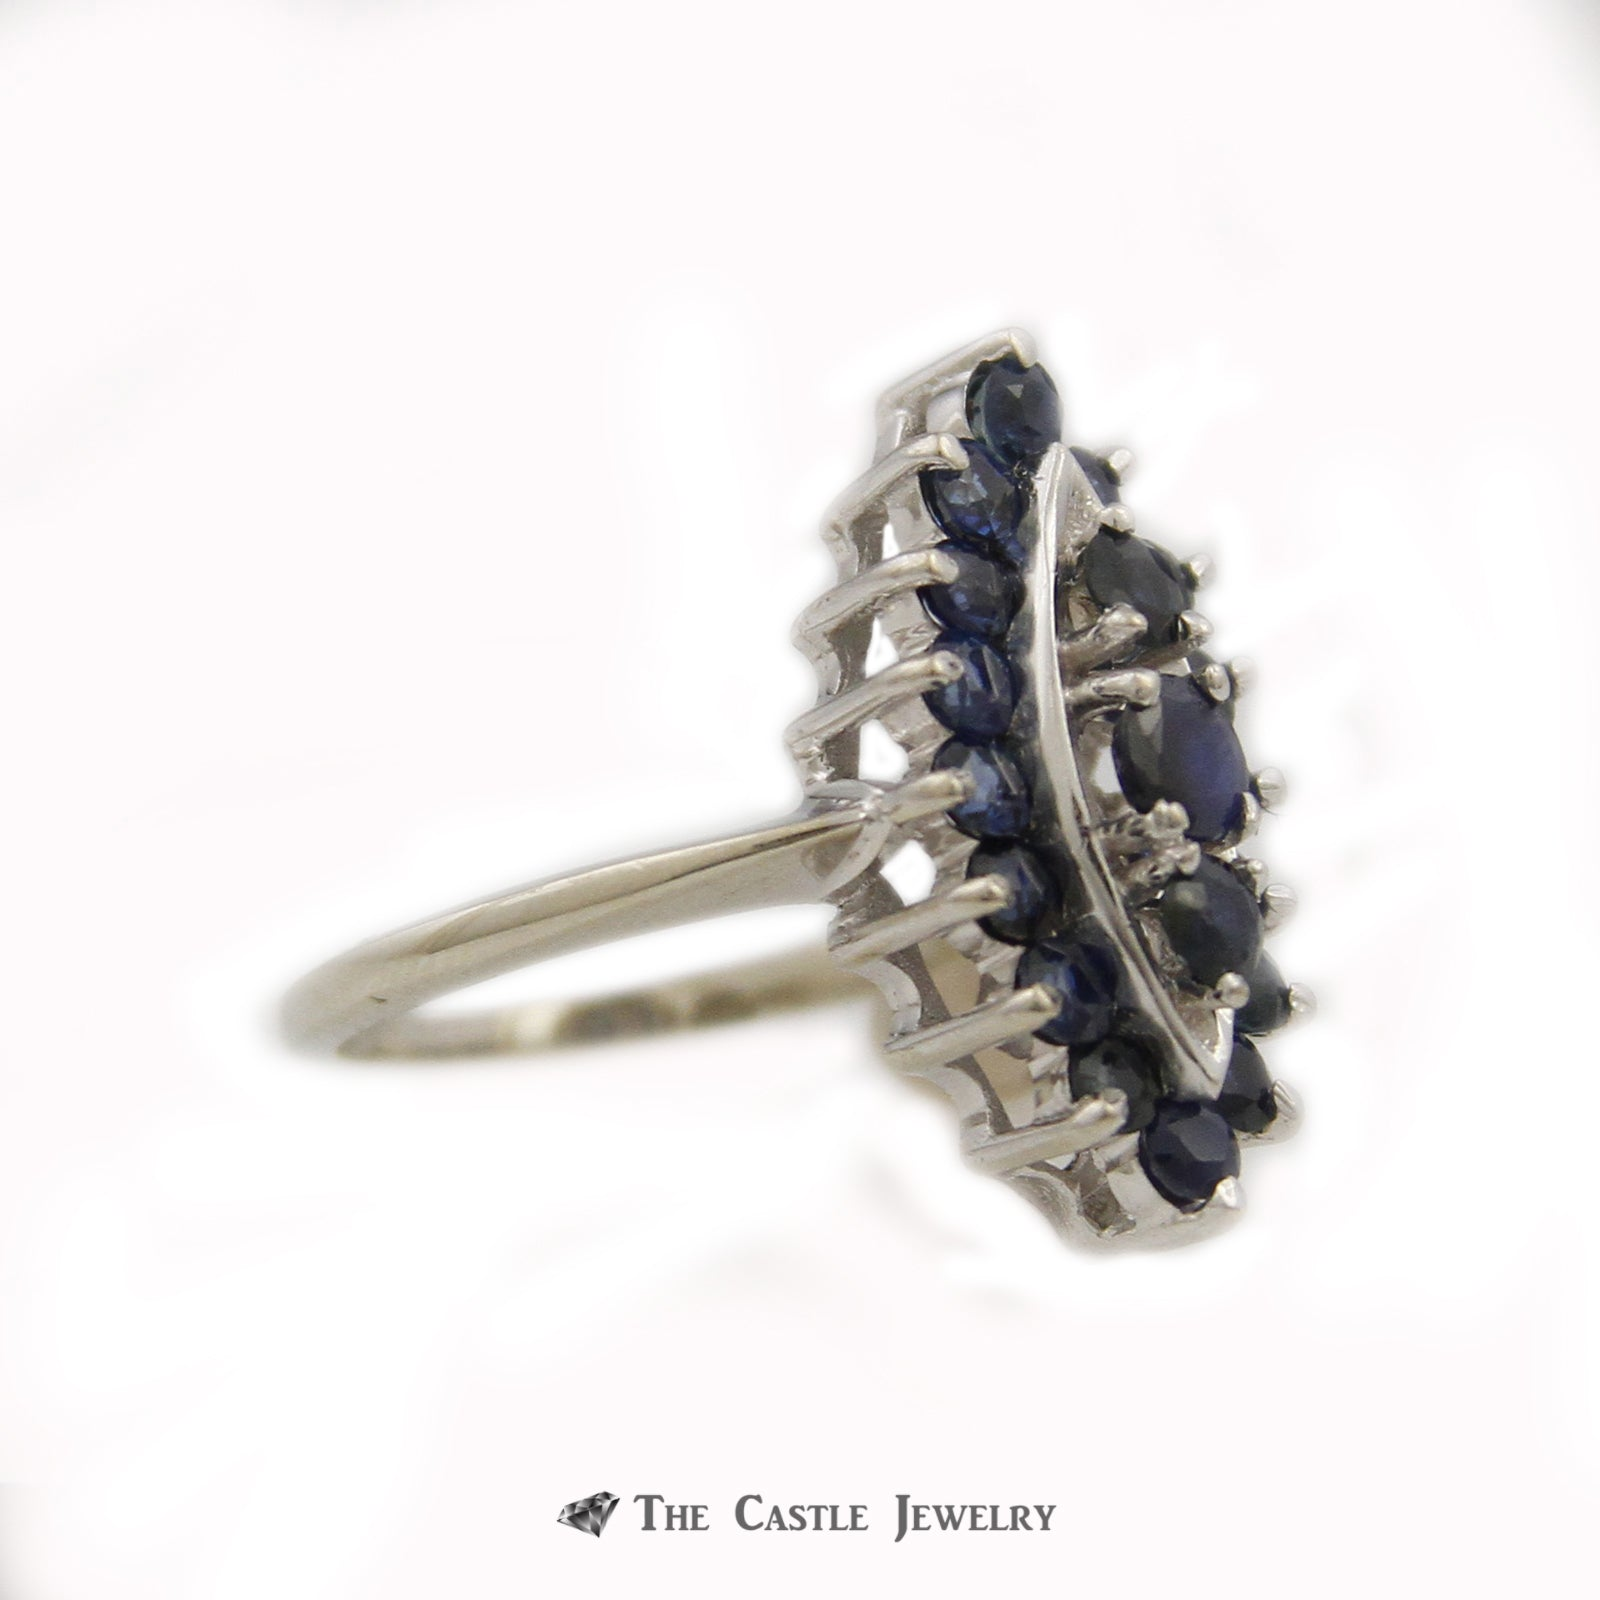 Marquise Shaped Cluster Ring w/ Round Blue Sapphire Gemstones Crafted in 14k White Gold-2